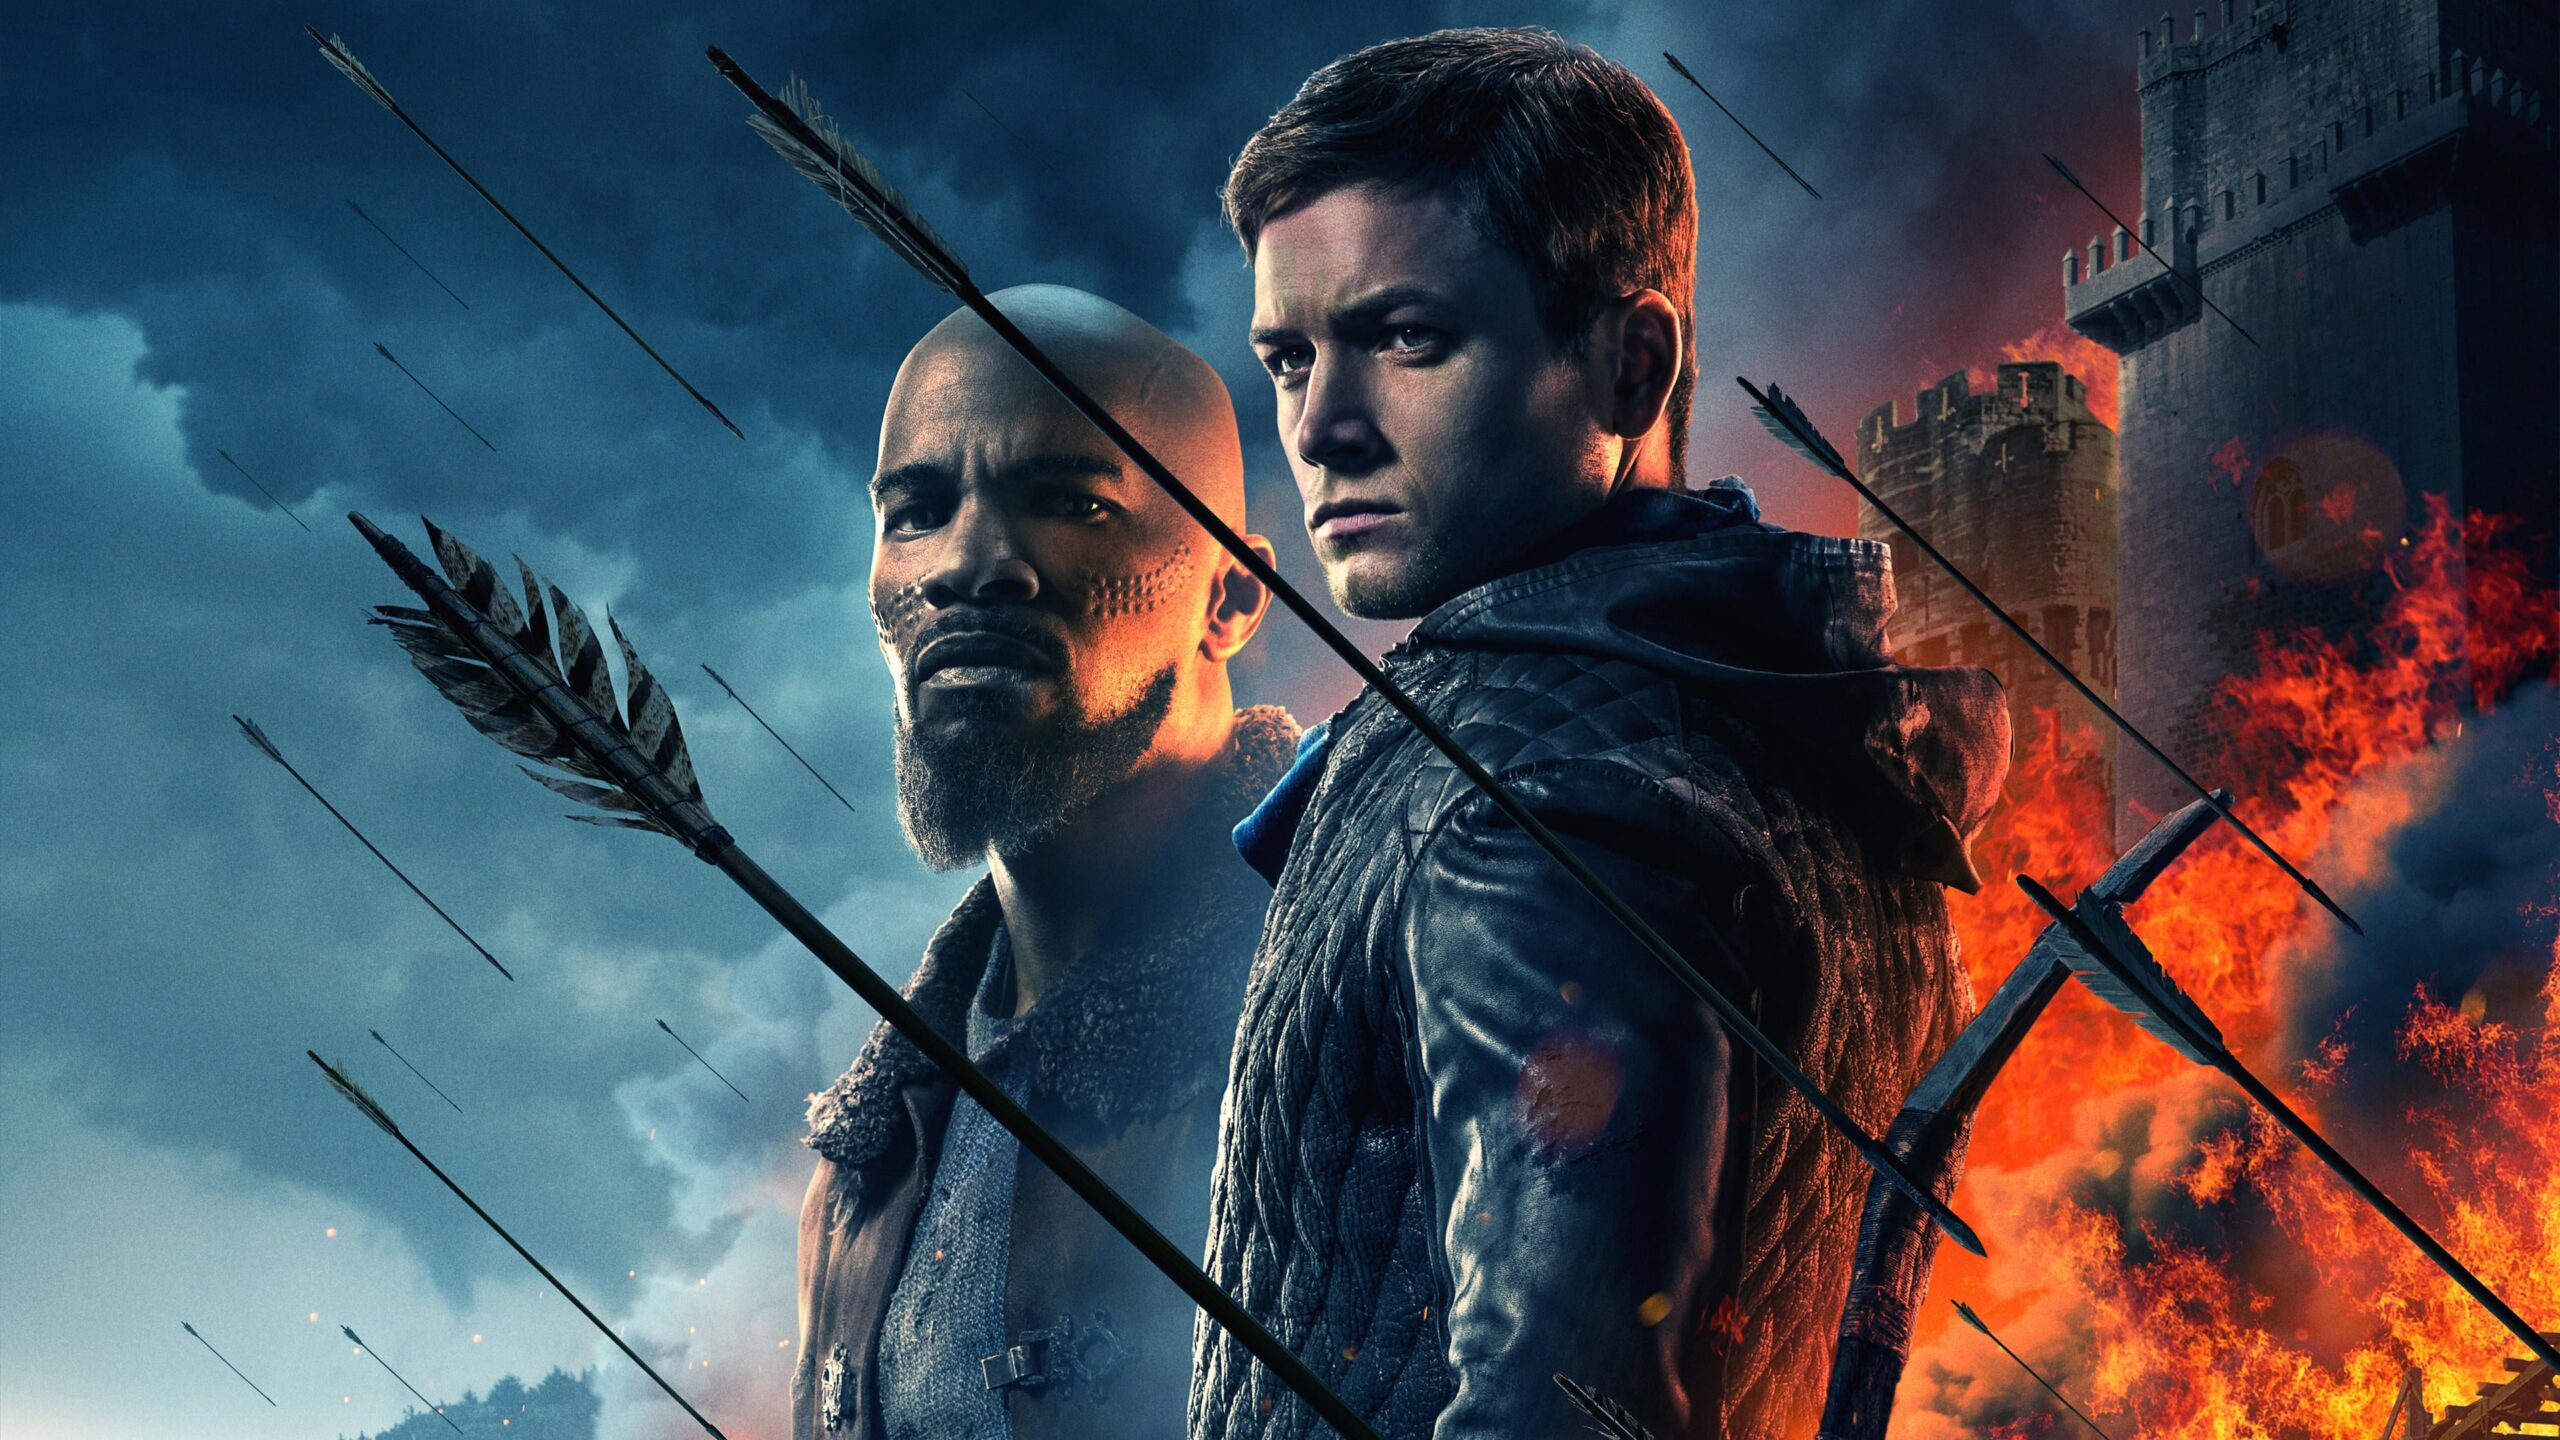 Robin Hood Movie Streaming Online Watch on Google Play, Youtube, iTunes